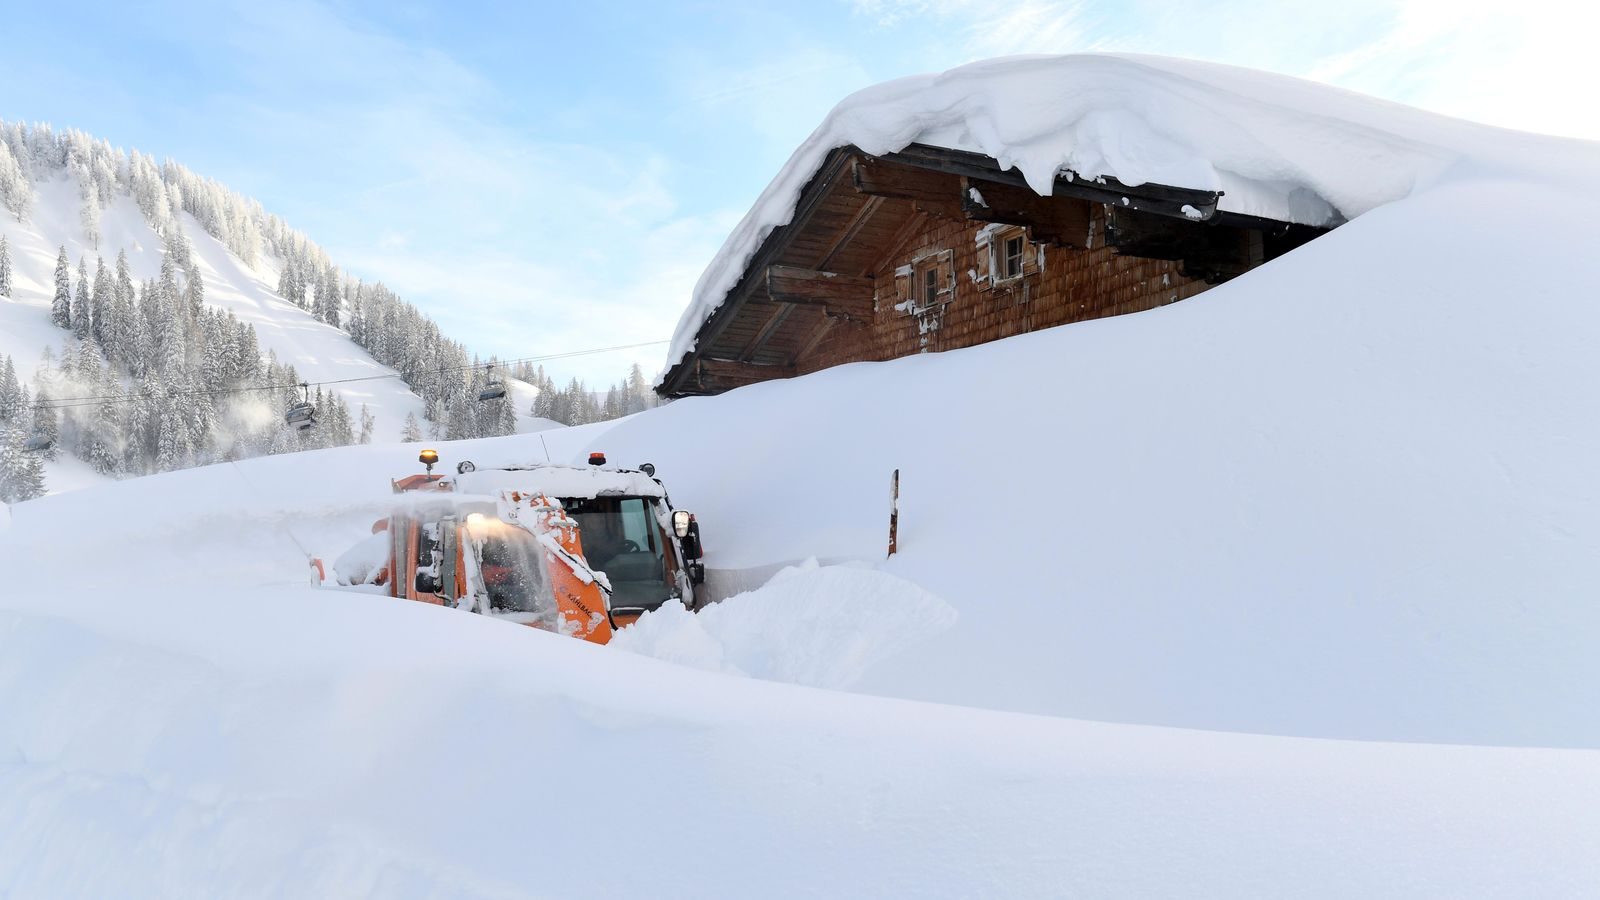 A snow blower is seen on the Loferer Alp in Lofer, Austrian province of Salzburg, Friday, Jan. 11, 2019. In Salzburg, all parks, public gardens, play areas and cemeteries were closed on Friday because of the danger of trees falling under the weight of snow.(AP Photo/Kerstin Joensson)